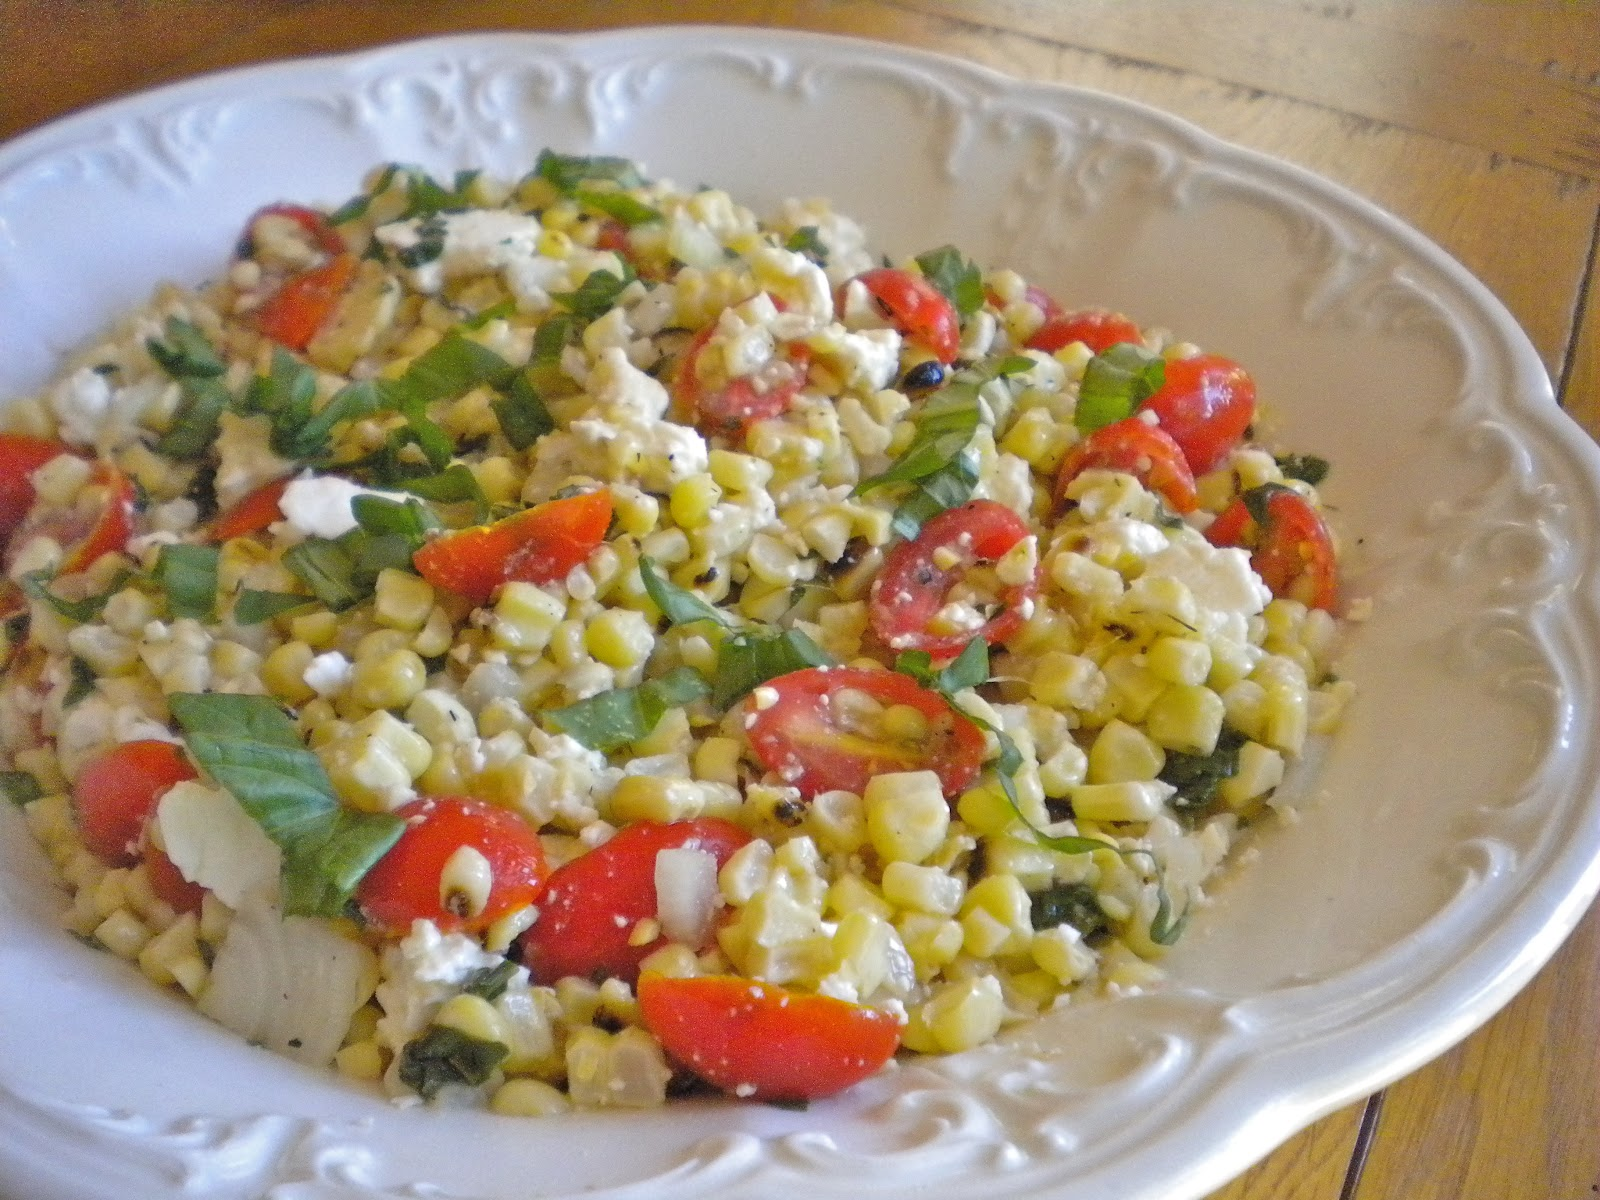 Kitchen Cactus: Grilled Corn and Tomato Salad with Basil ...